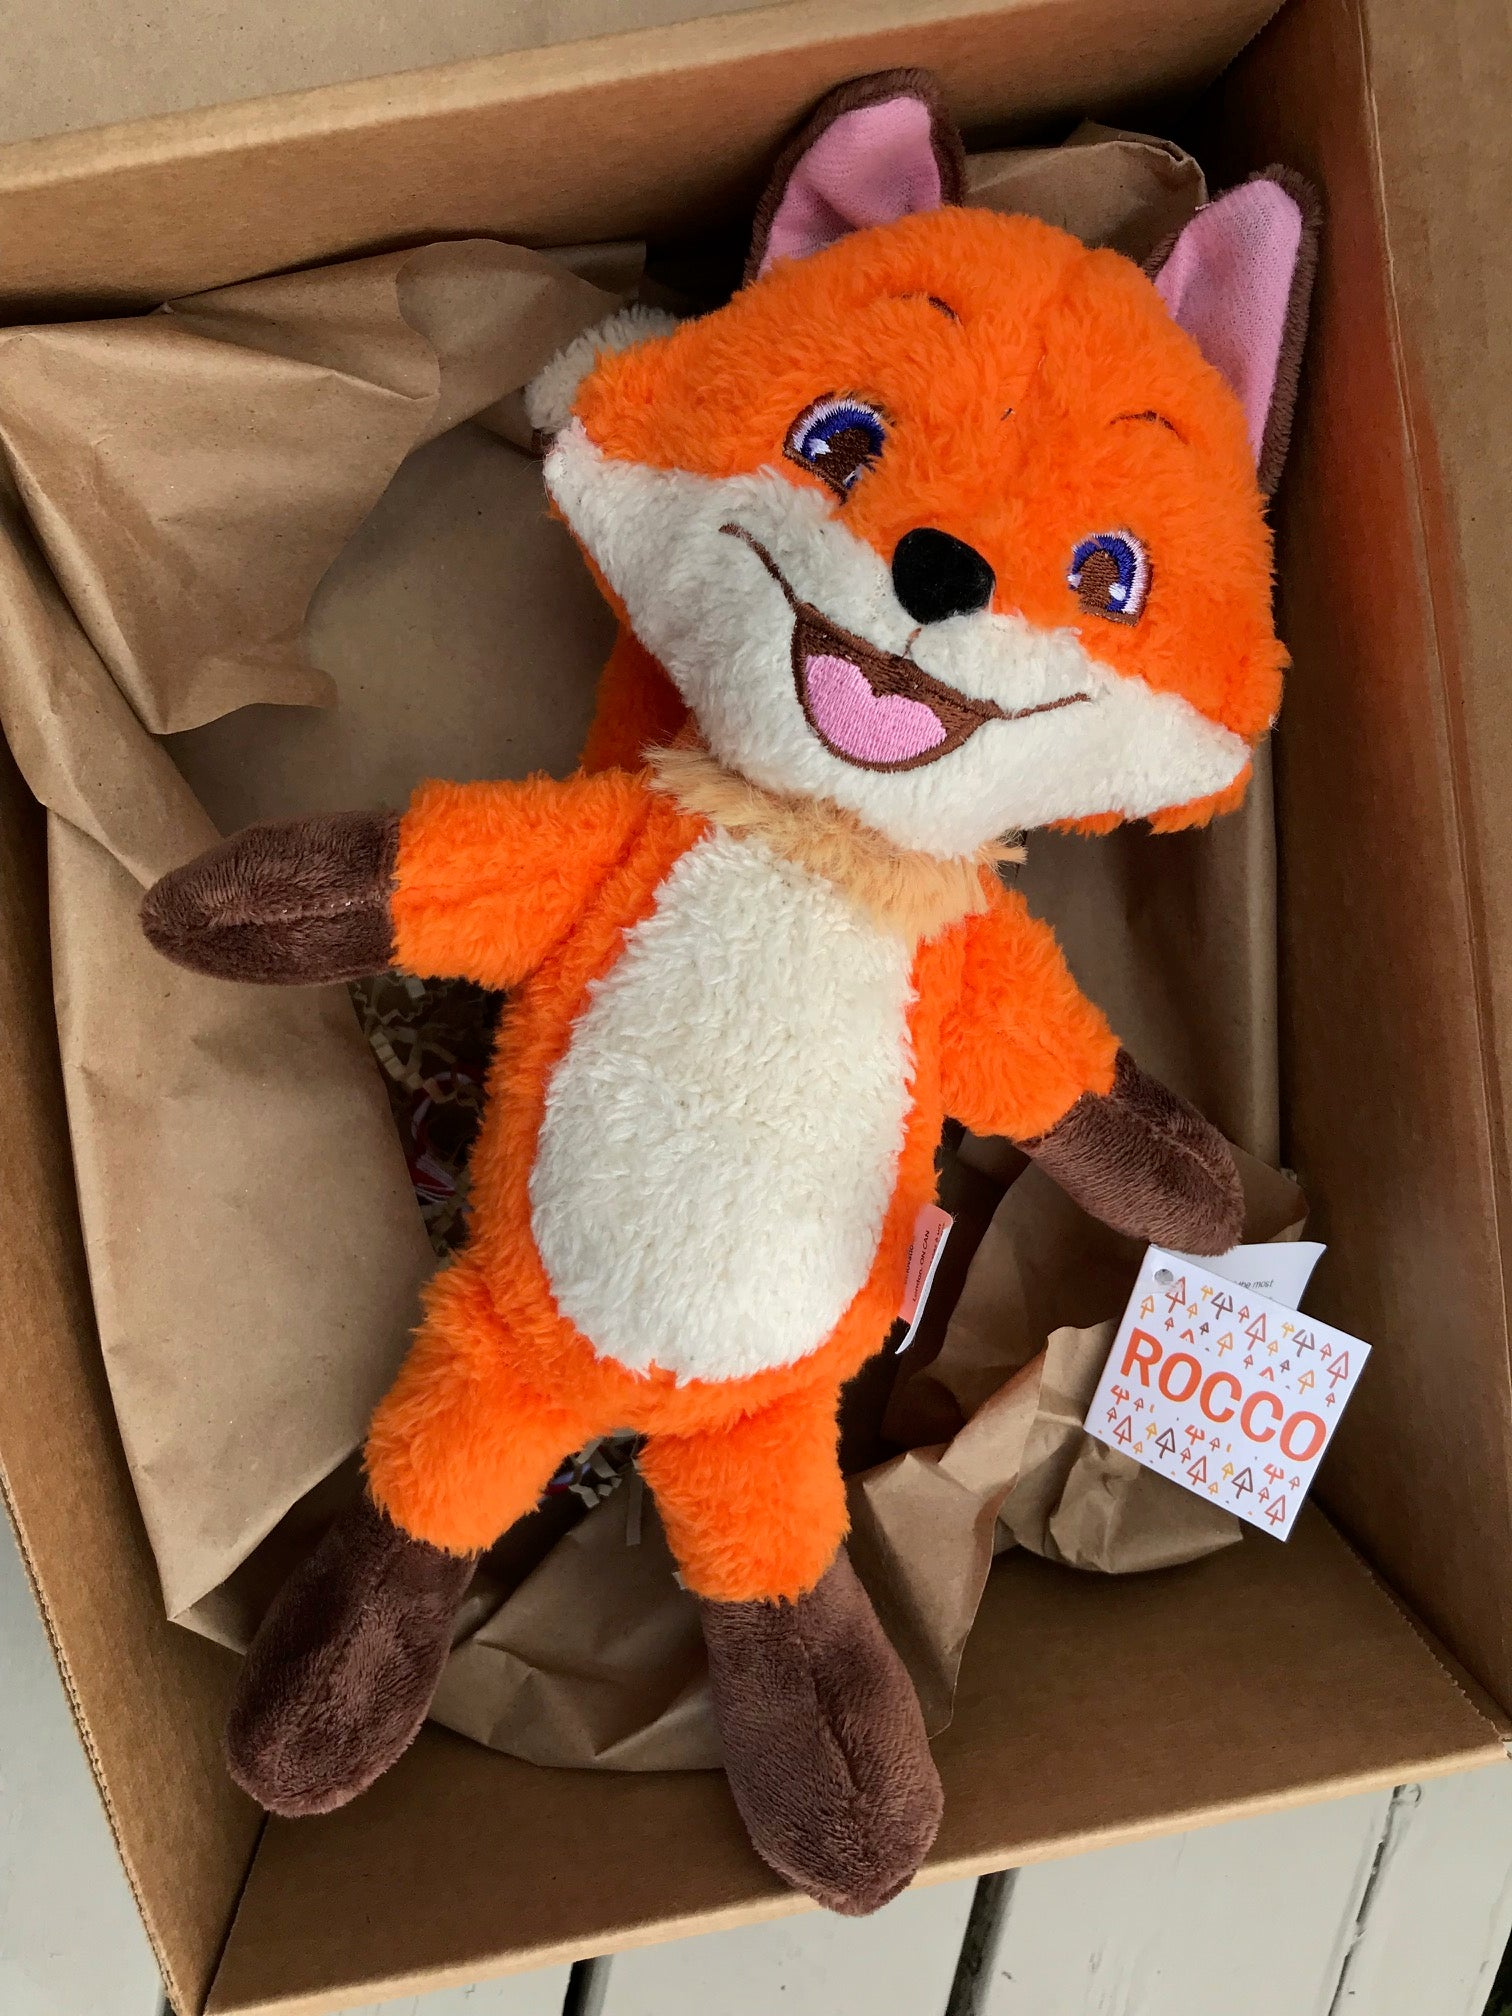 A picture of the Rocco plush fox lying in a gift box